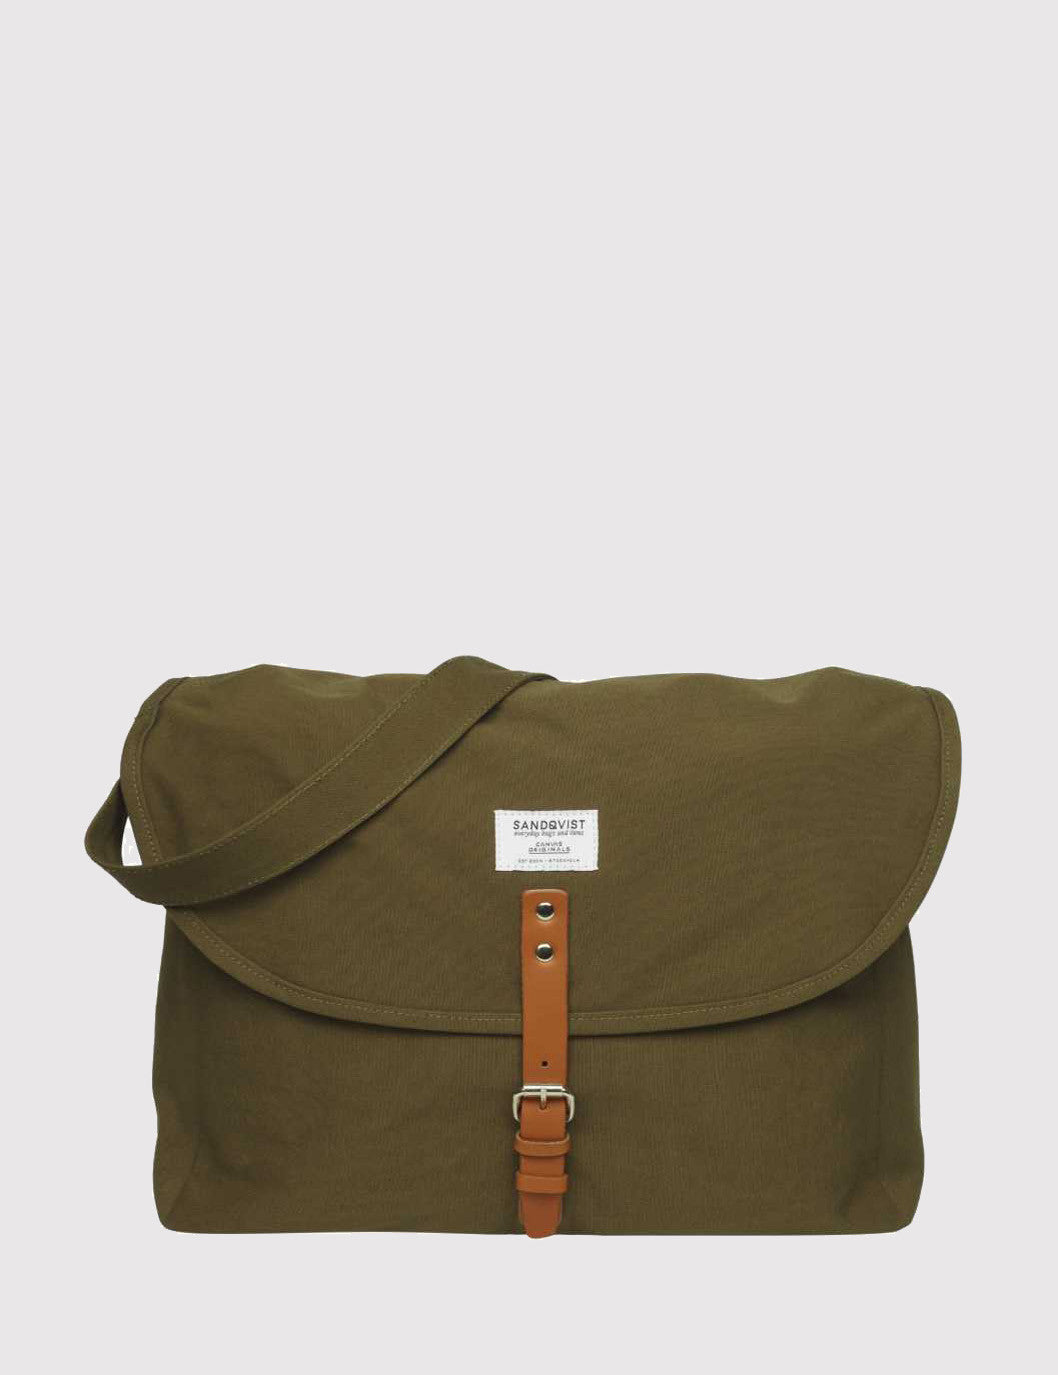 Sandqvist Jack Ground Messenger Bag - Olive